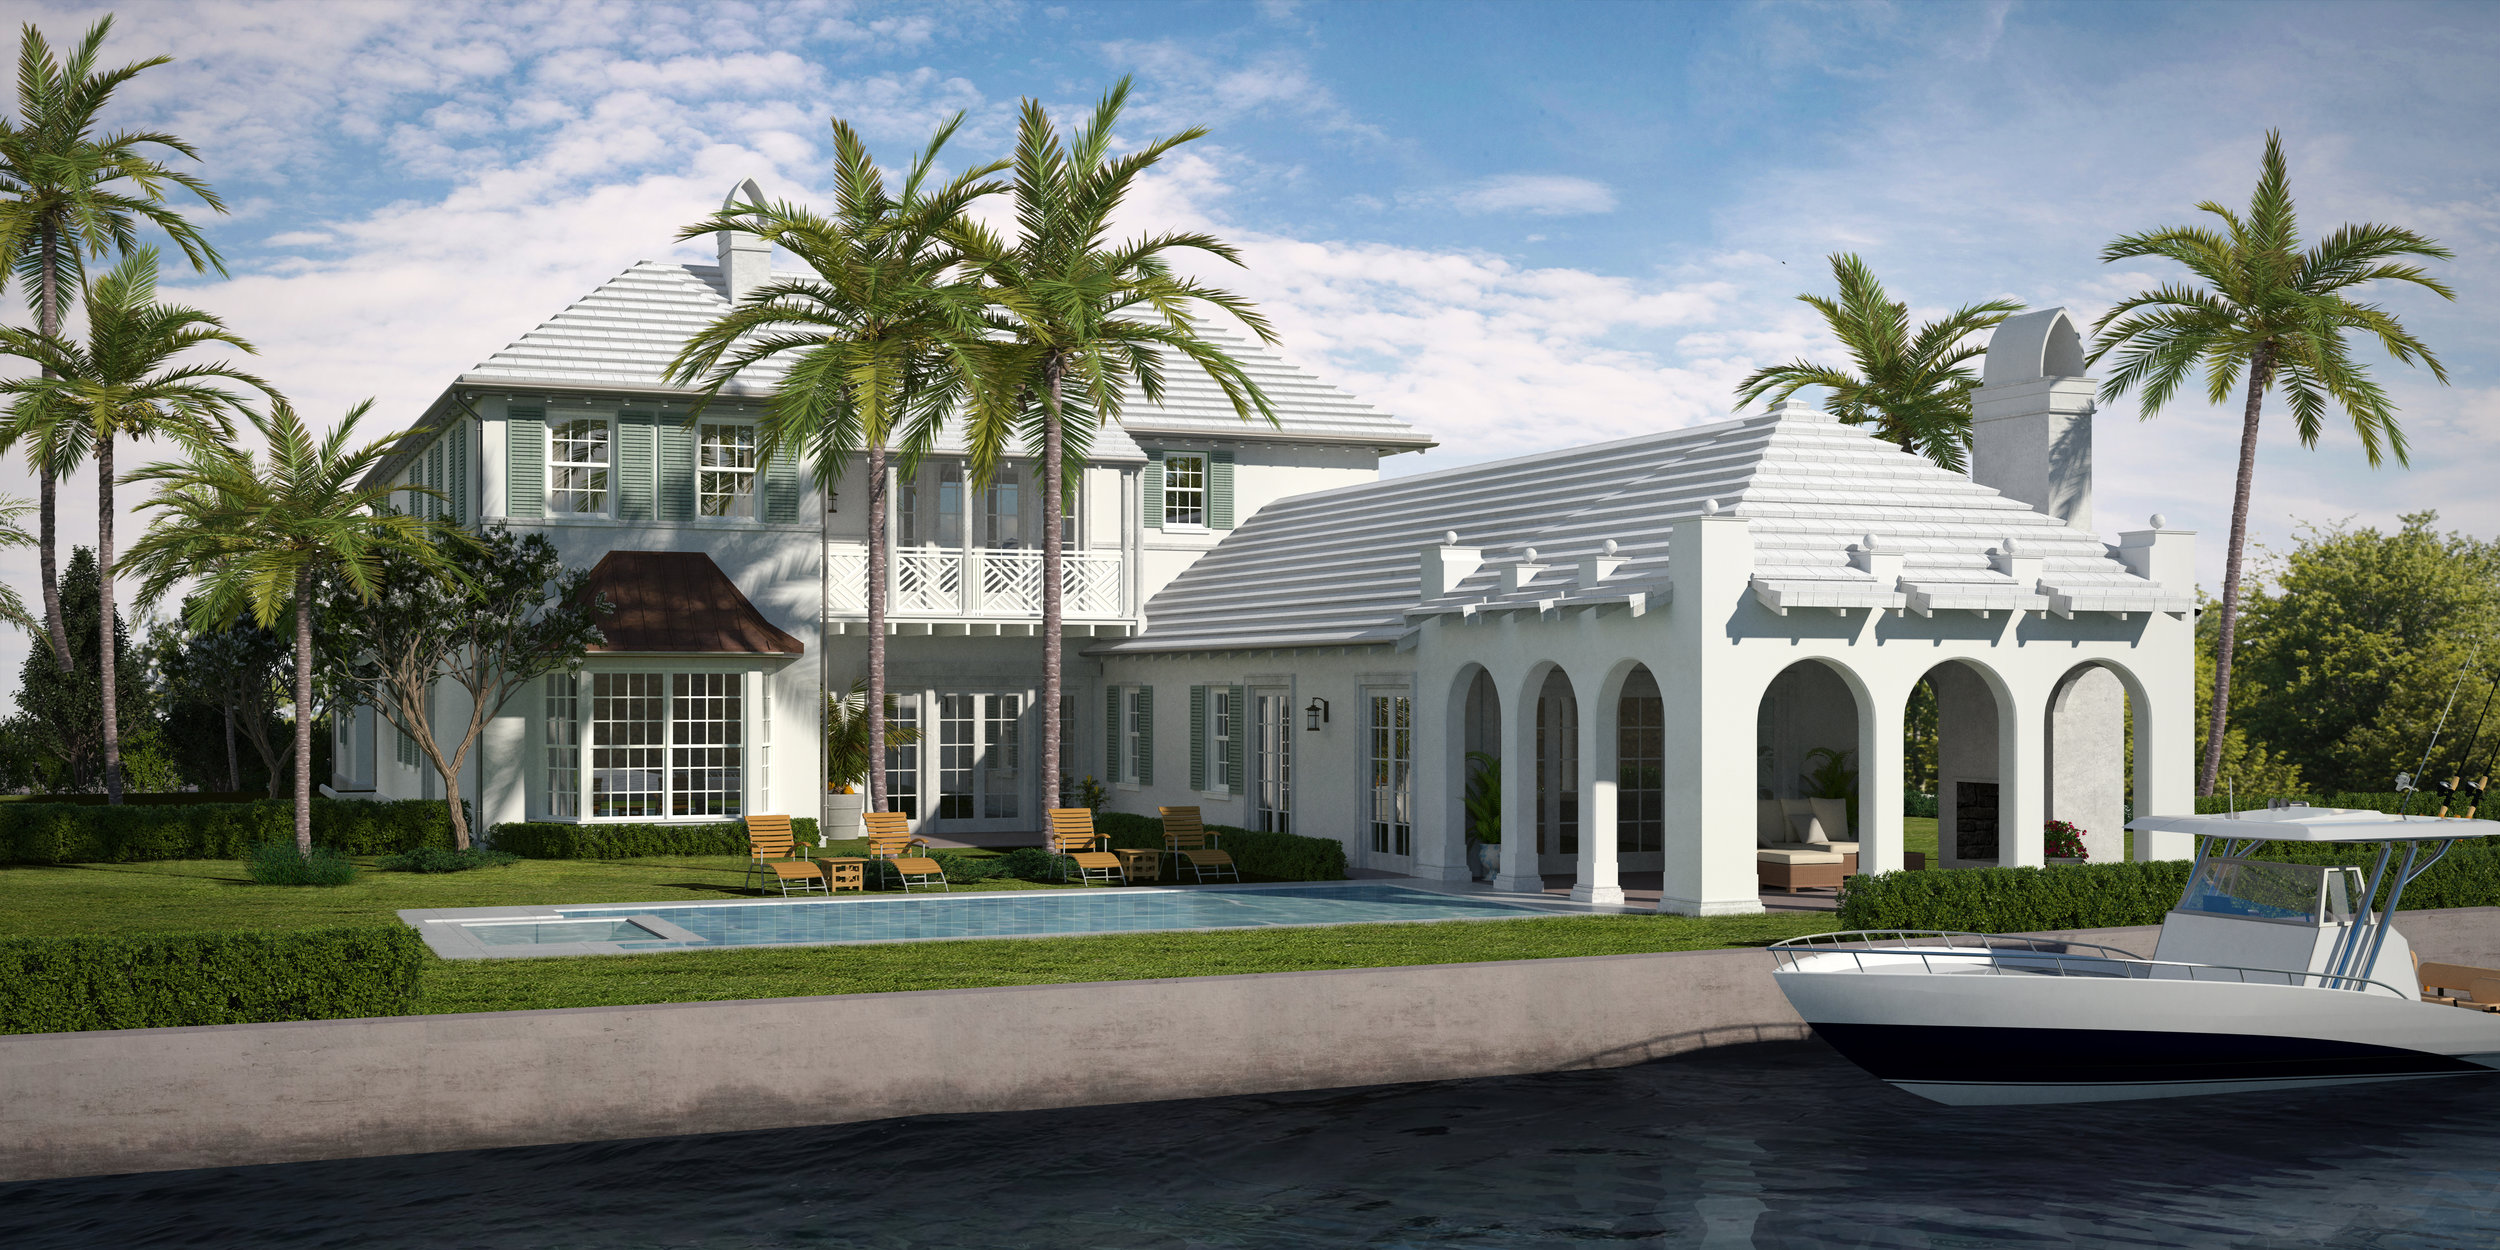 Malasky Homes Sells Palm Beach Spec Home On Everglades Island For $15.5 Million